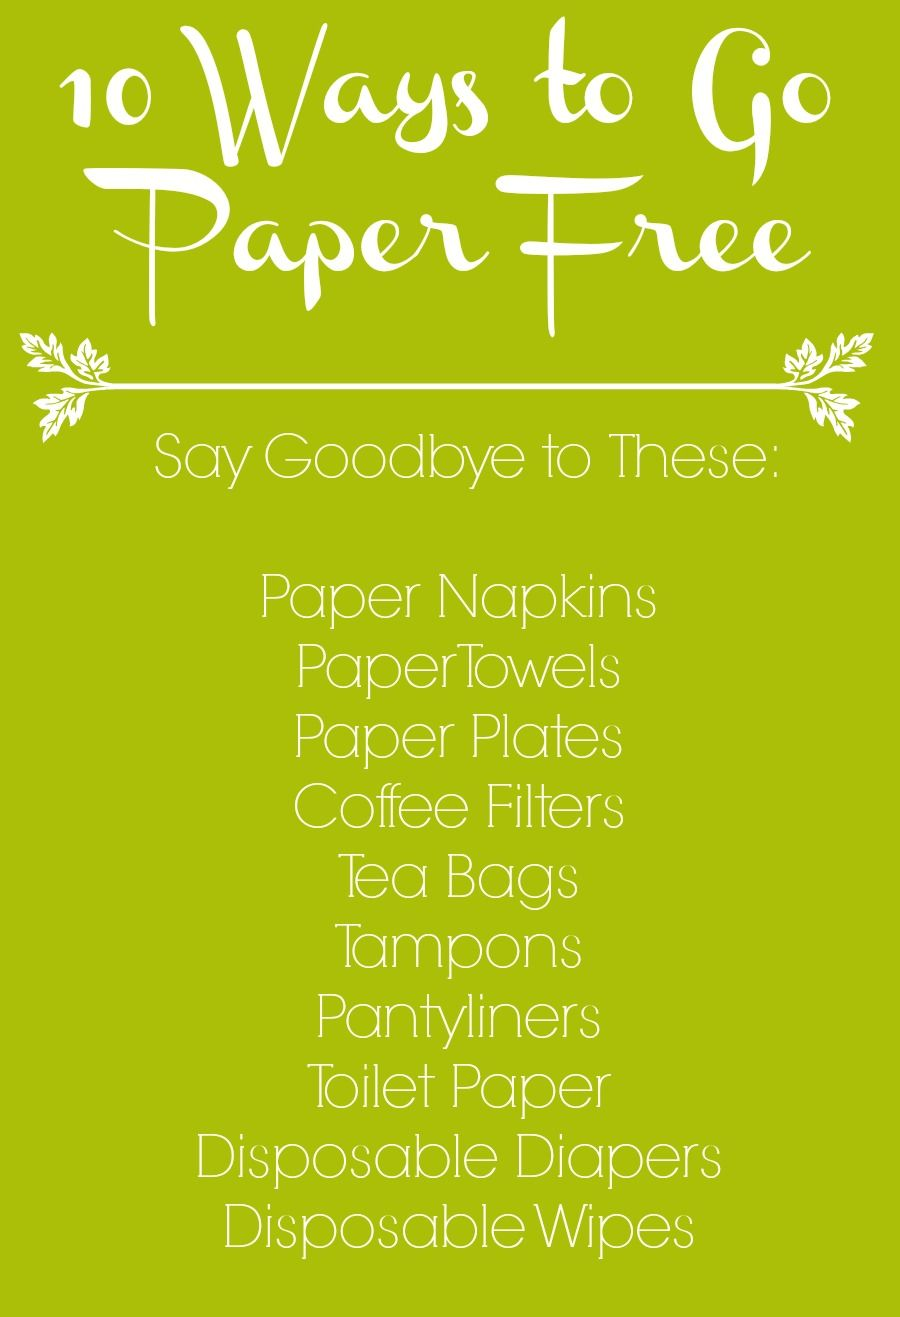 Quotes about love paper napkins never return from a laundry nor - 10 Ways To Go Paper Free